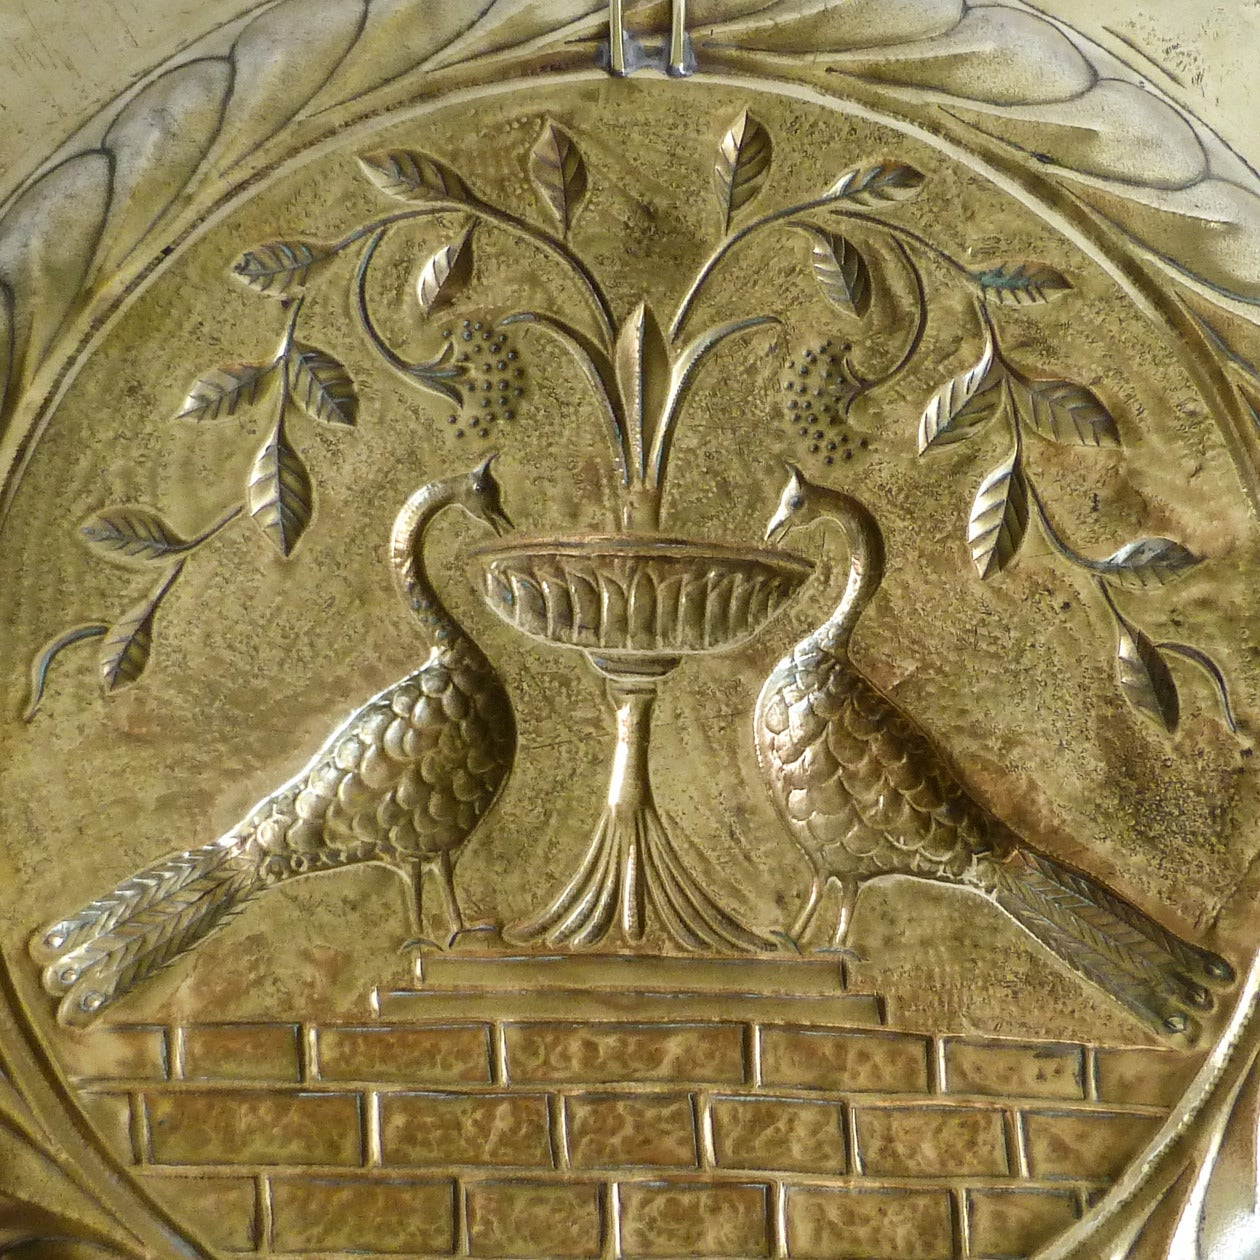 Extremely Rare Large Size German Brass Alms Dish, circa 1500 5